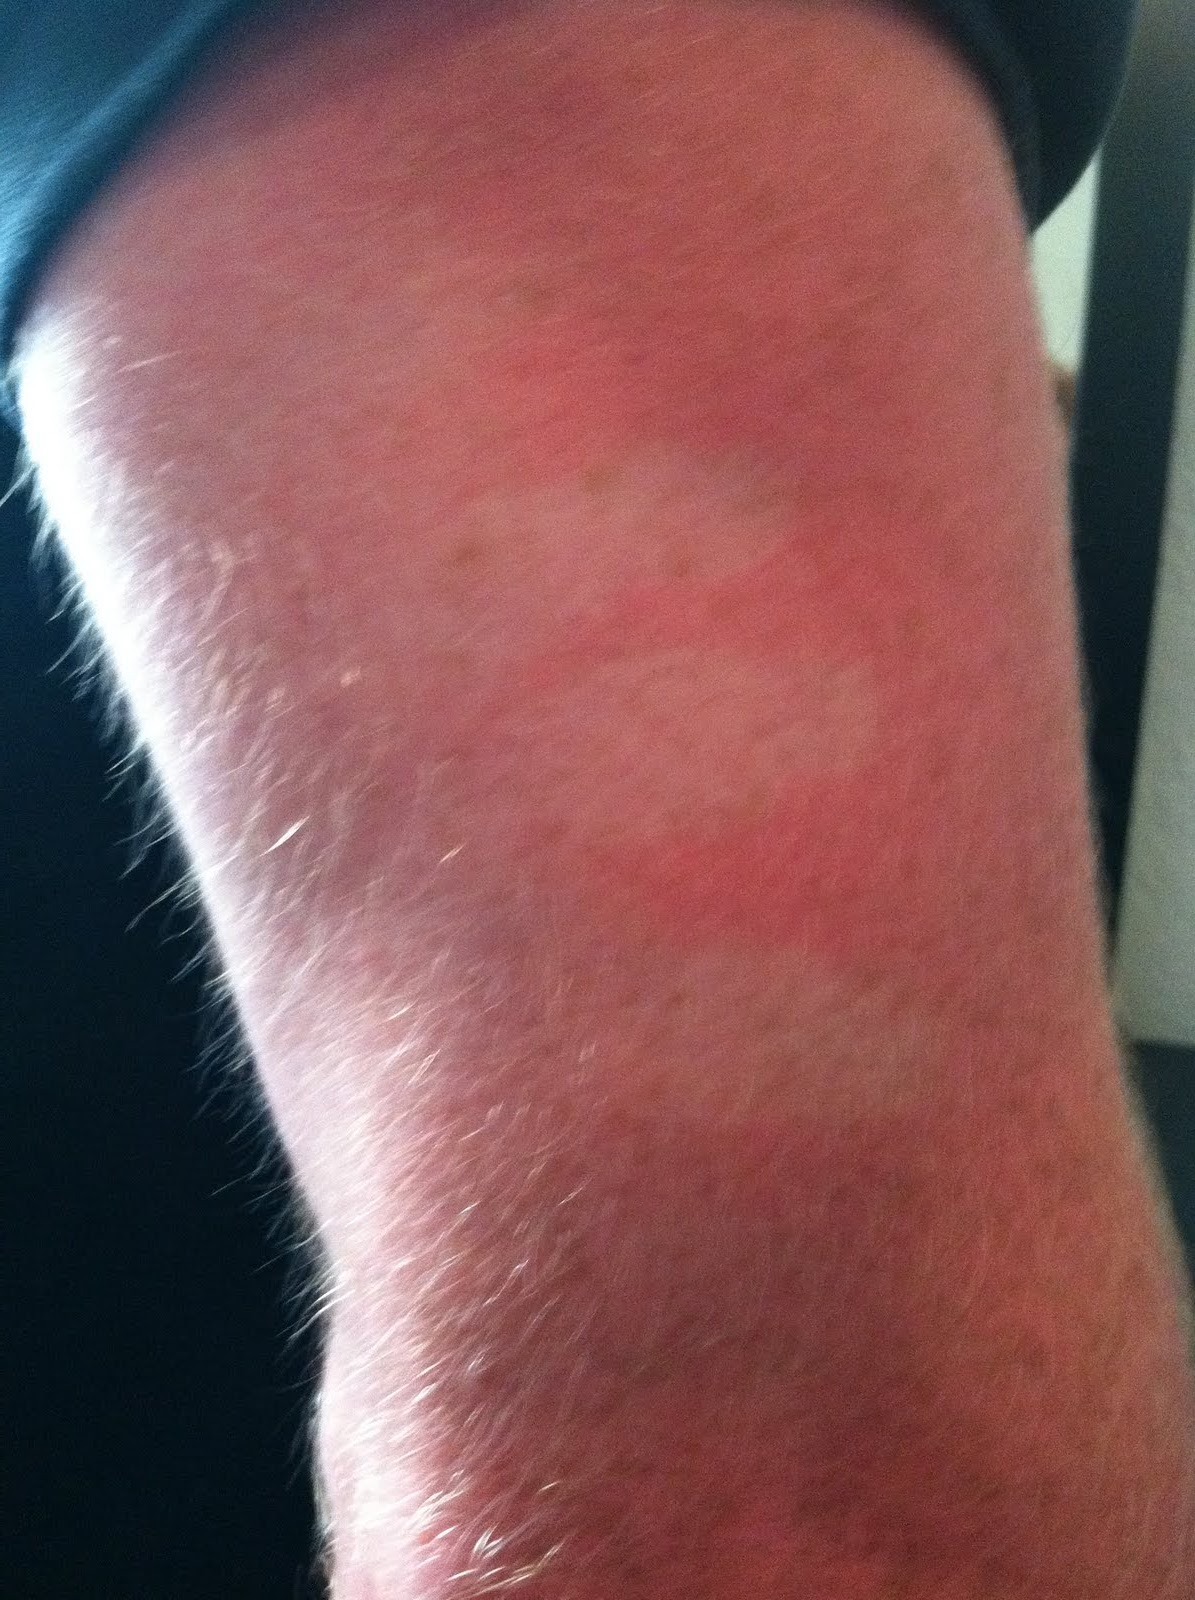 Picture of Sunburn - WebMD